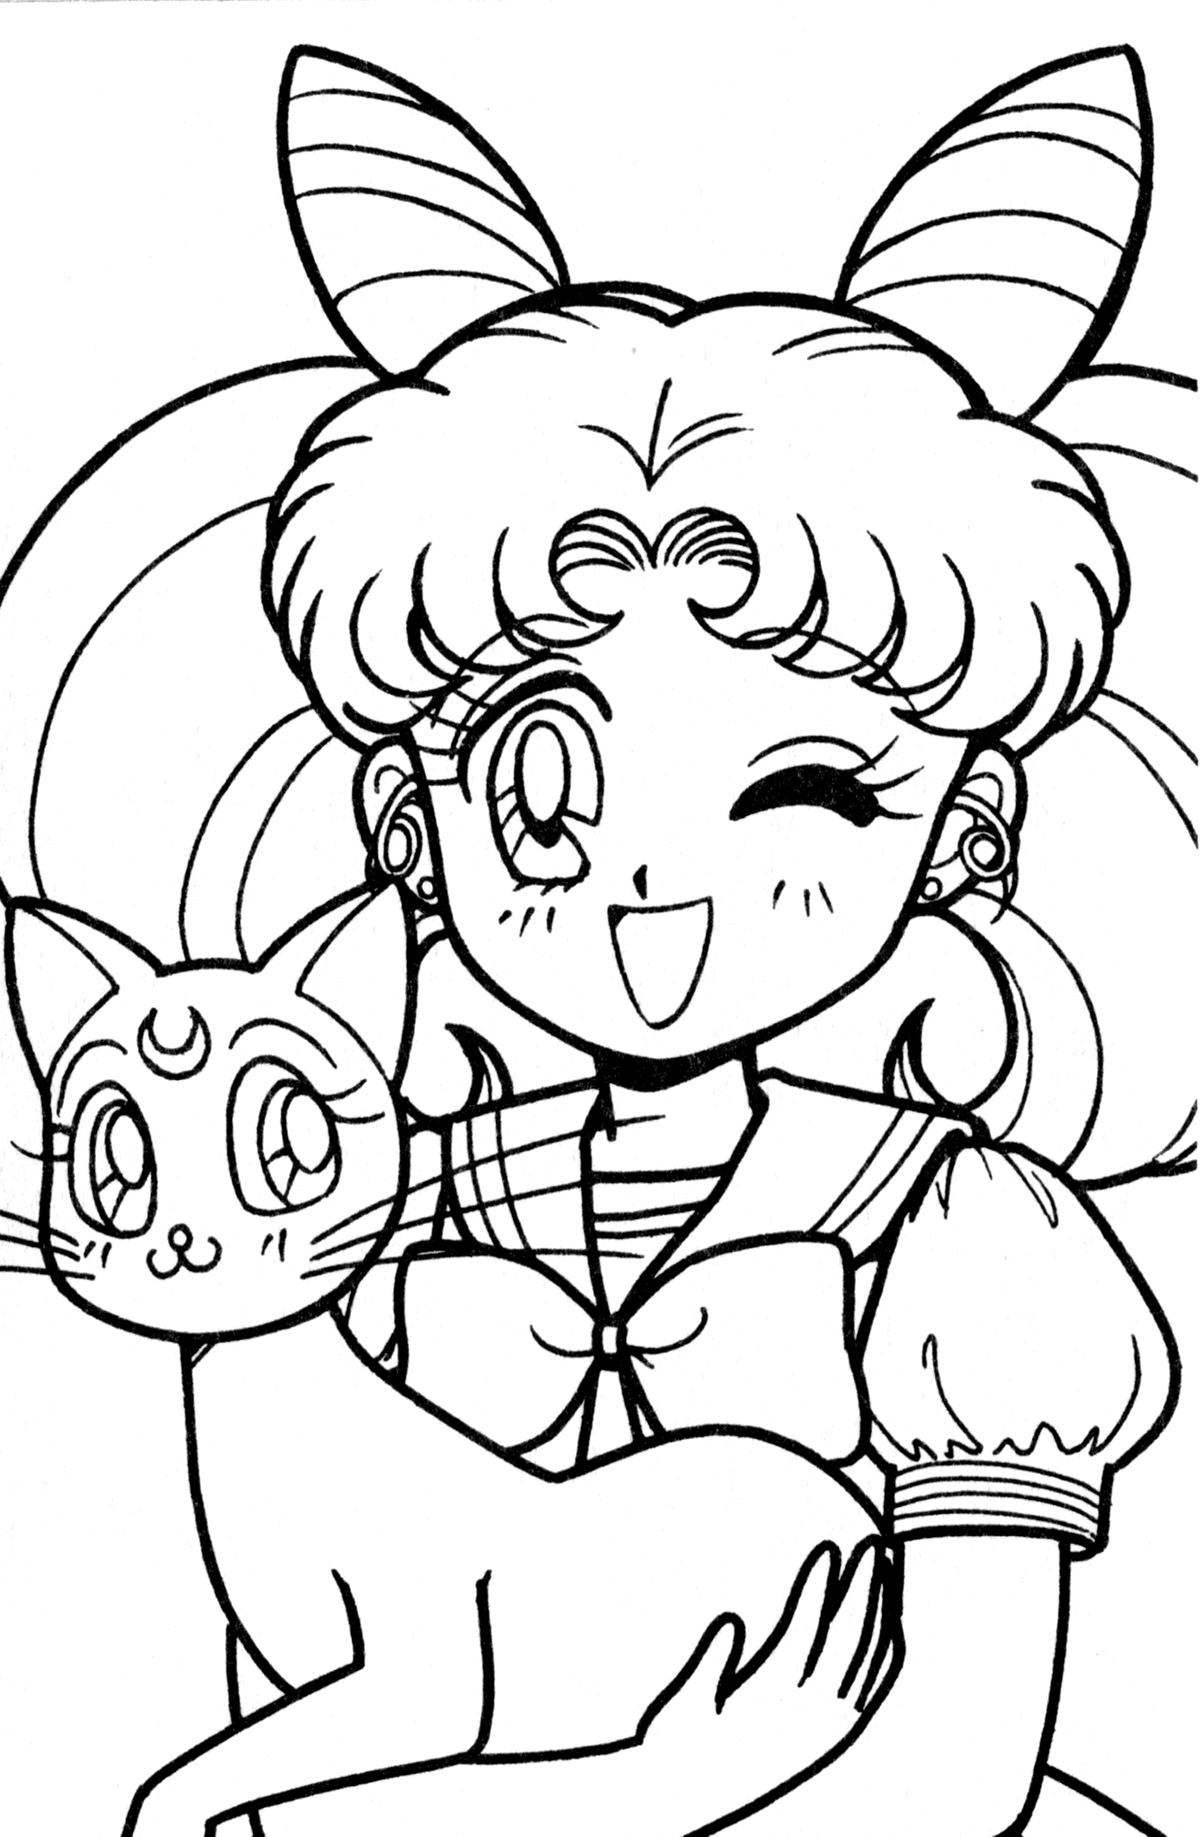 tsuki matsuri the sailormoon coloring book archive - Sailor Moon Coloring Pages